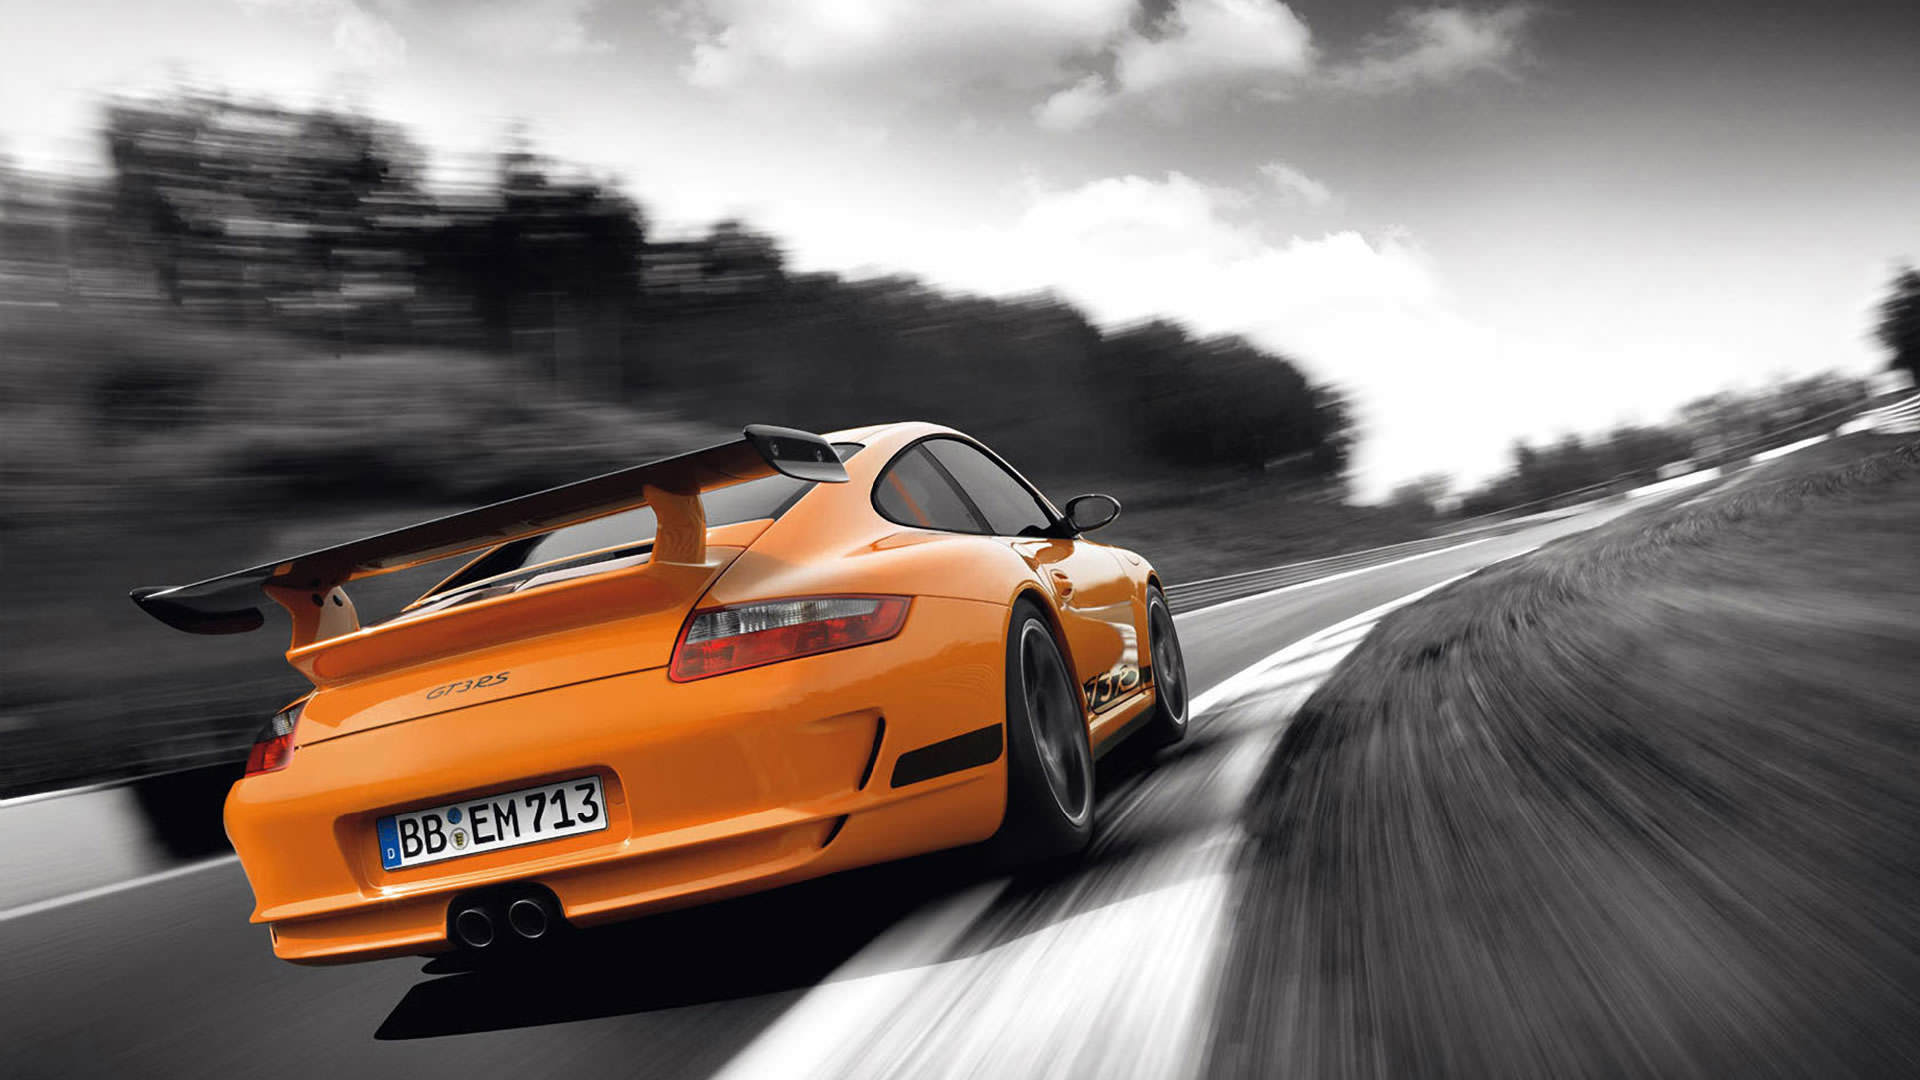 http://www.wallpaperstop.com/wallpapers/car-wallpapers/porsche-wallpapers/porsche-gt3-rs-wallpaper-1920x1080-1008079.jpg